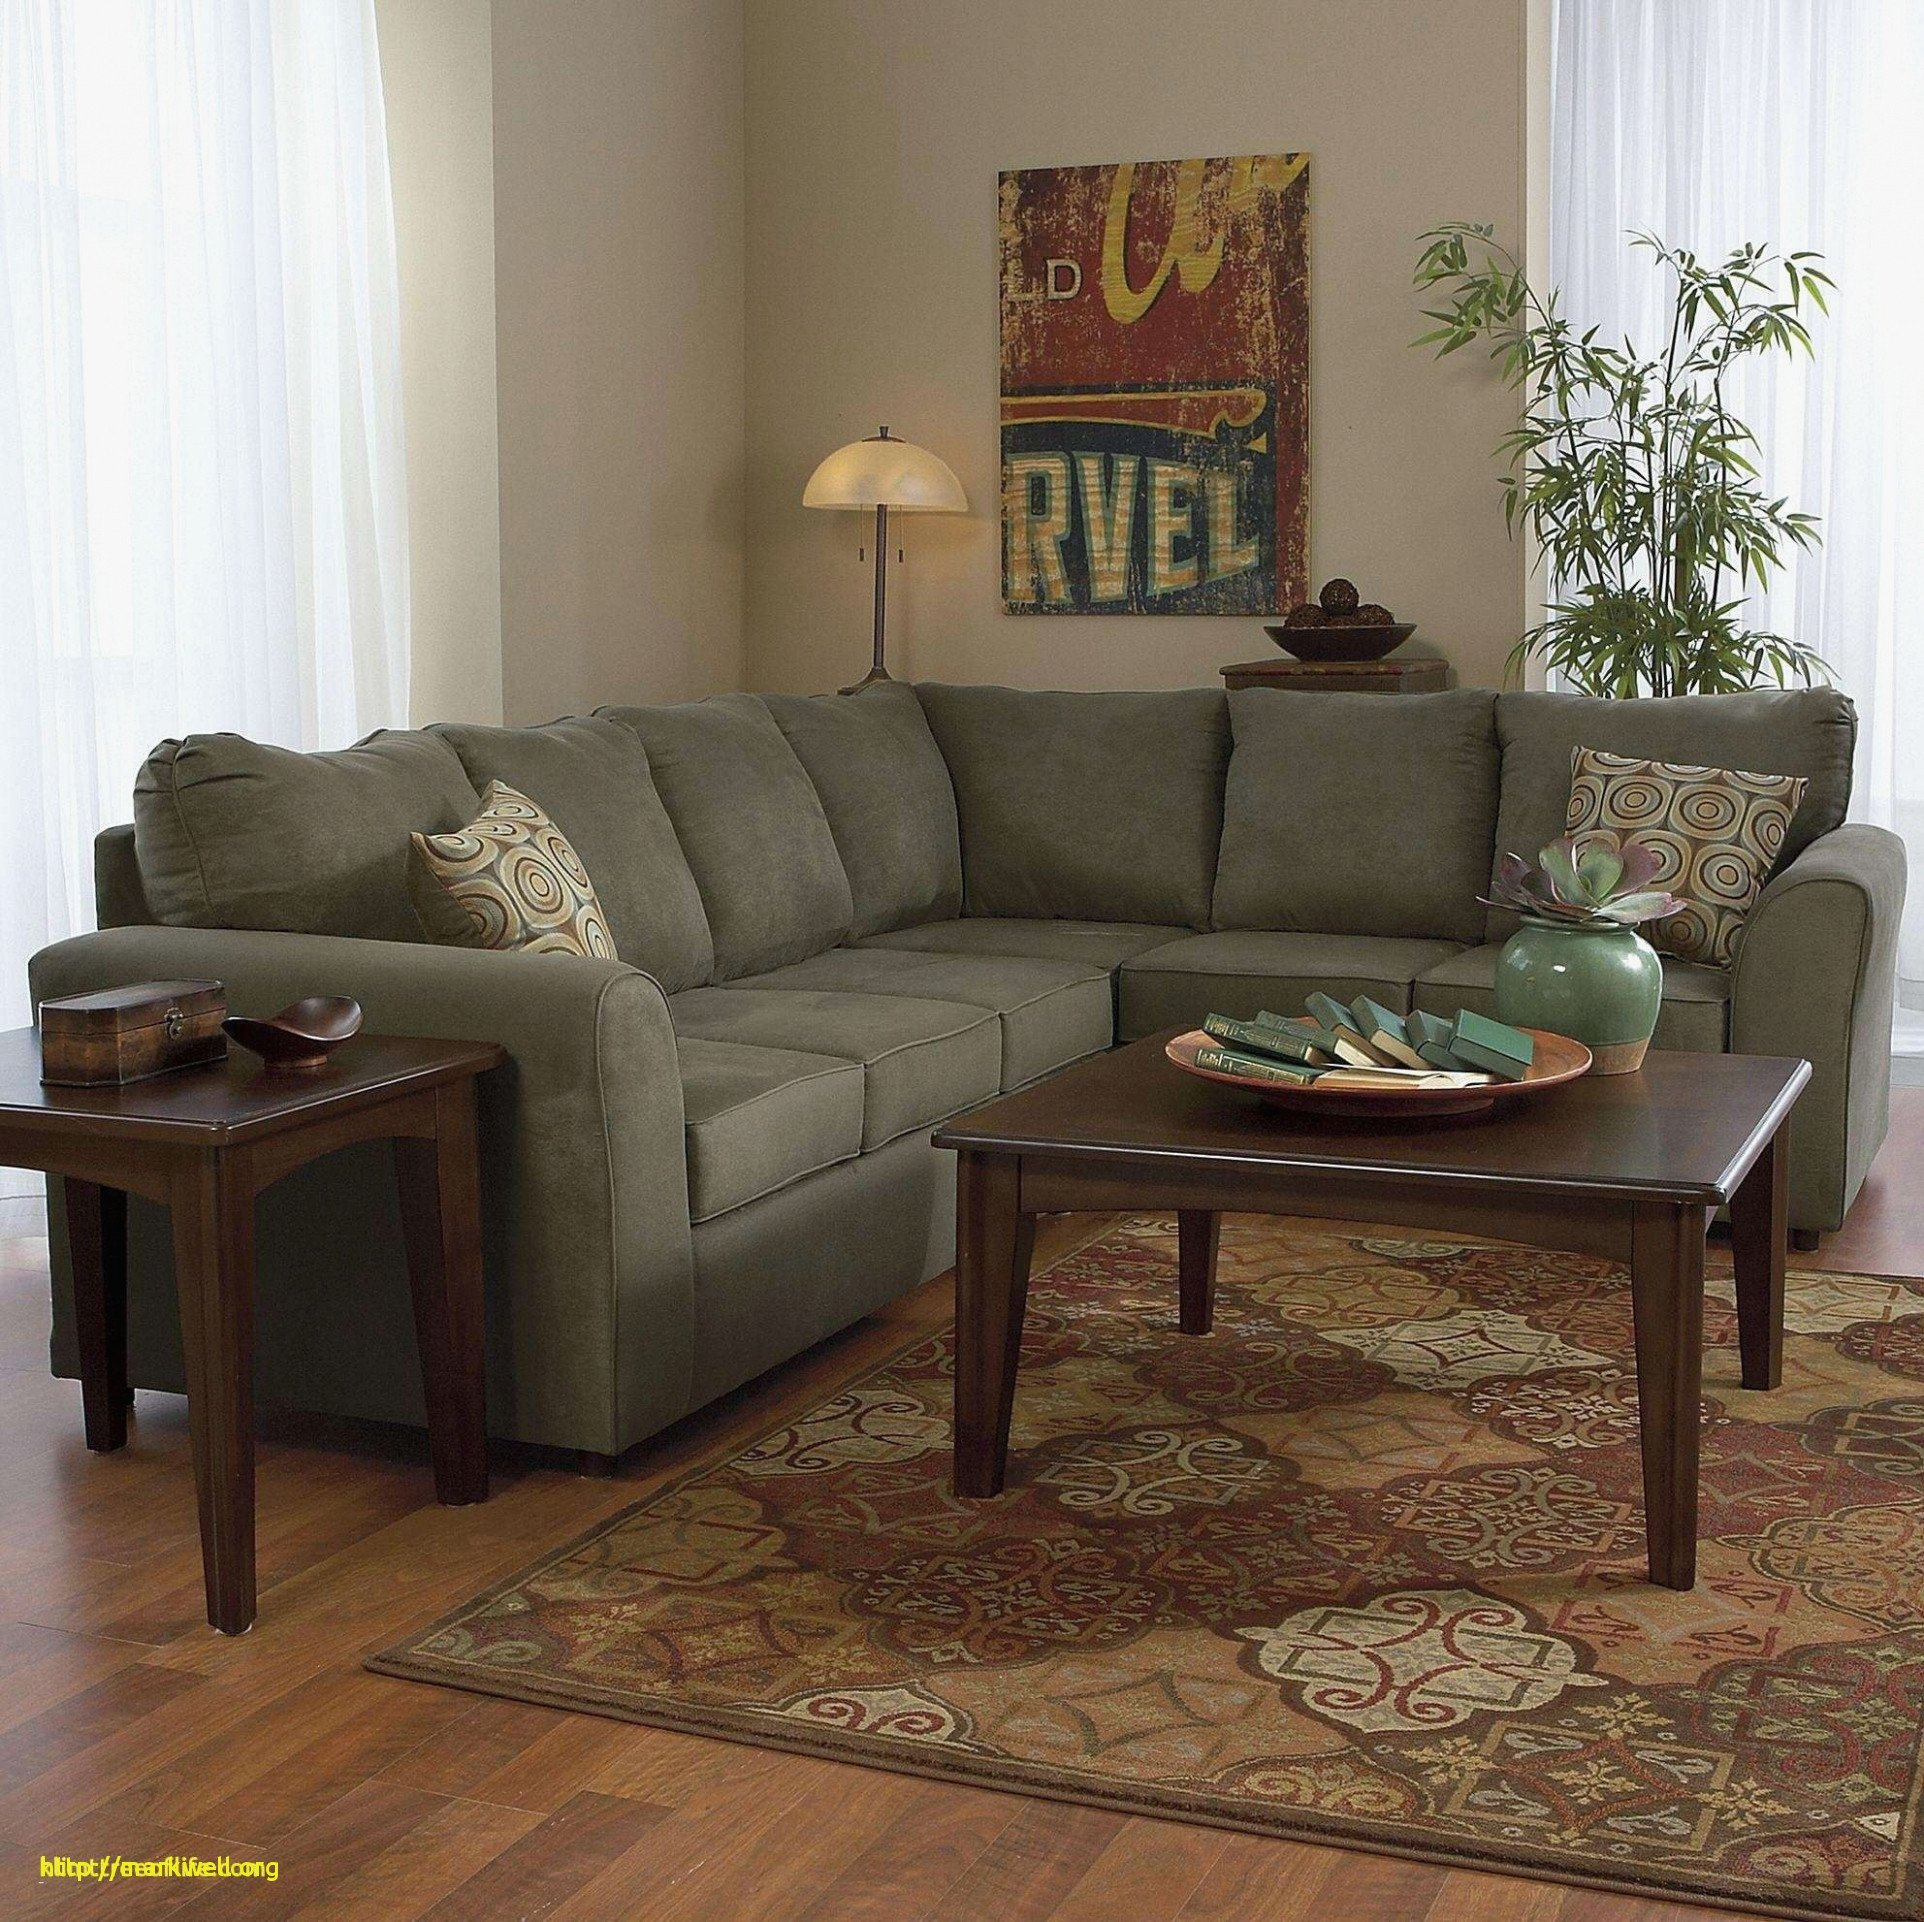 Small Recliners for Bedroom Awesome Unique Living Room Accent Furniture